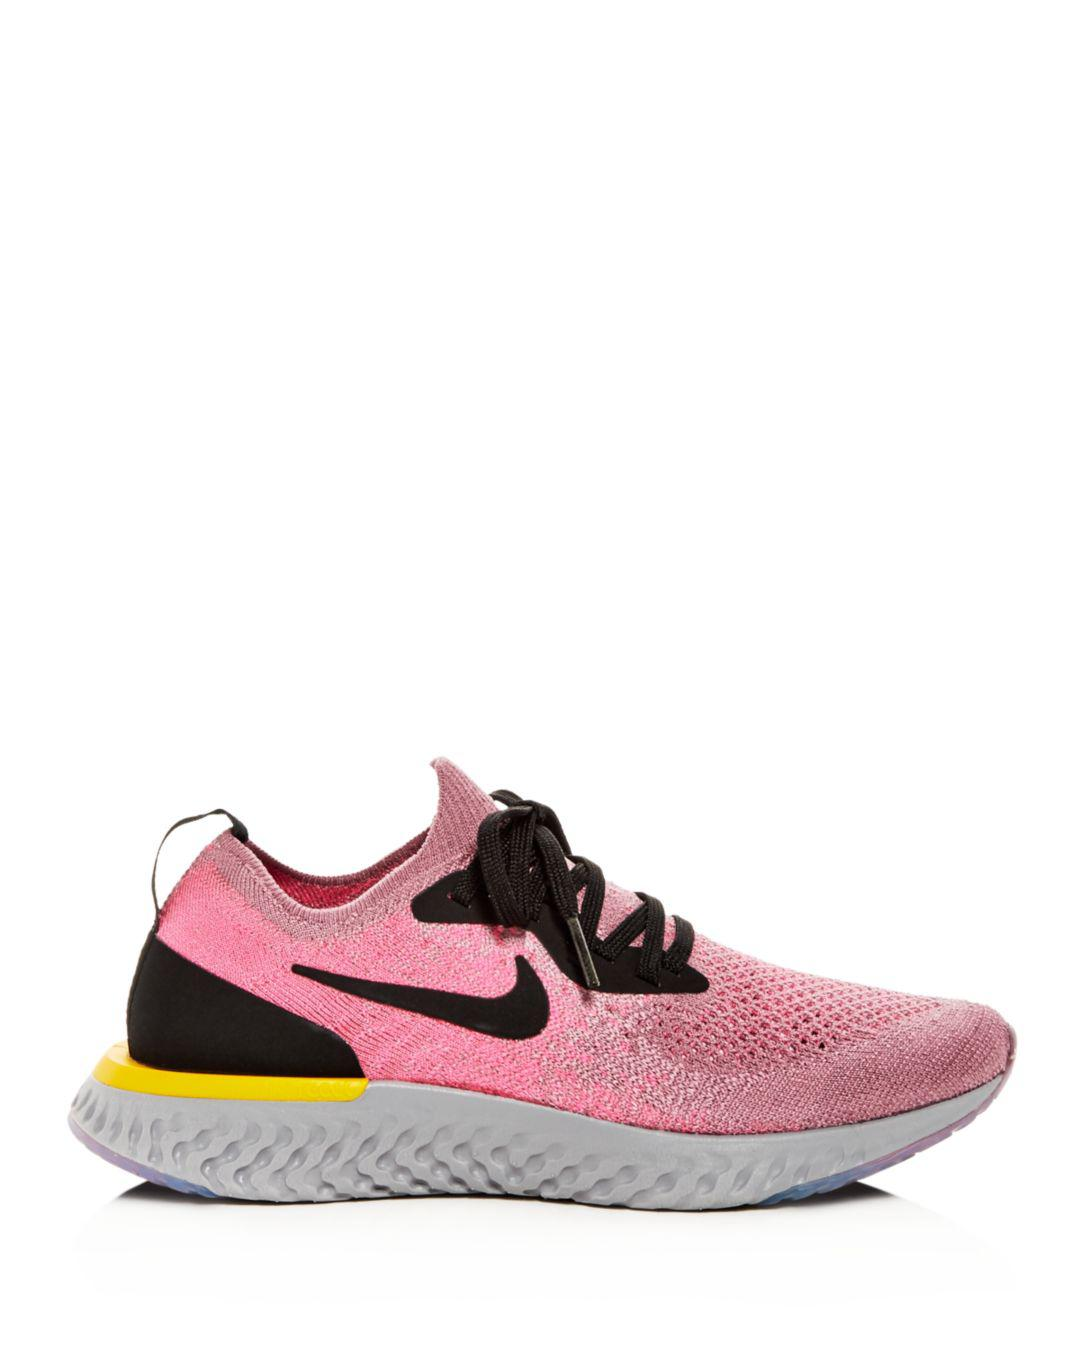 0a31f9a2874 Nike - Multicolor Women s Epic React Flyknit Lace-up Sneakers - Lyst. View  fullscreen